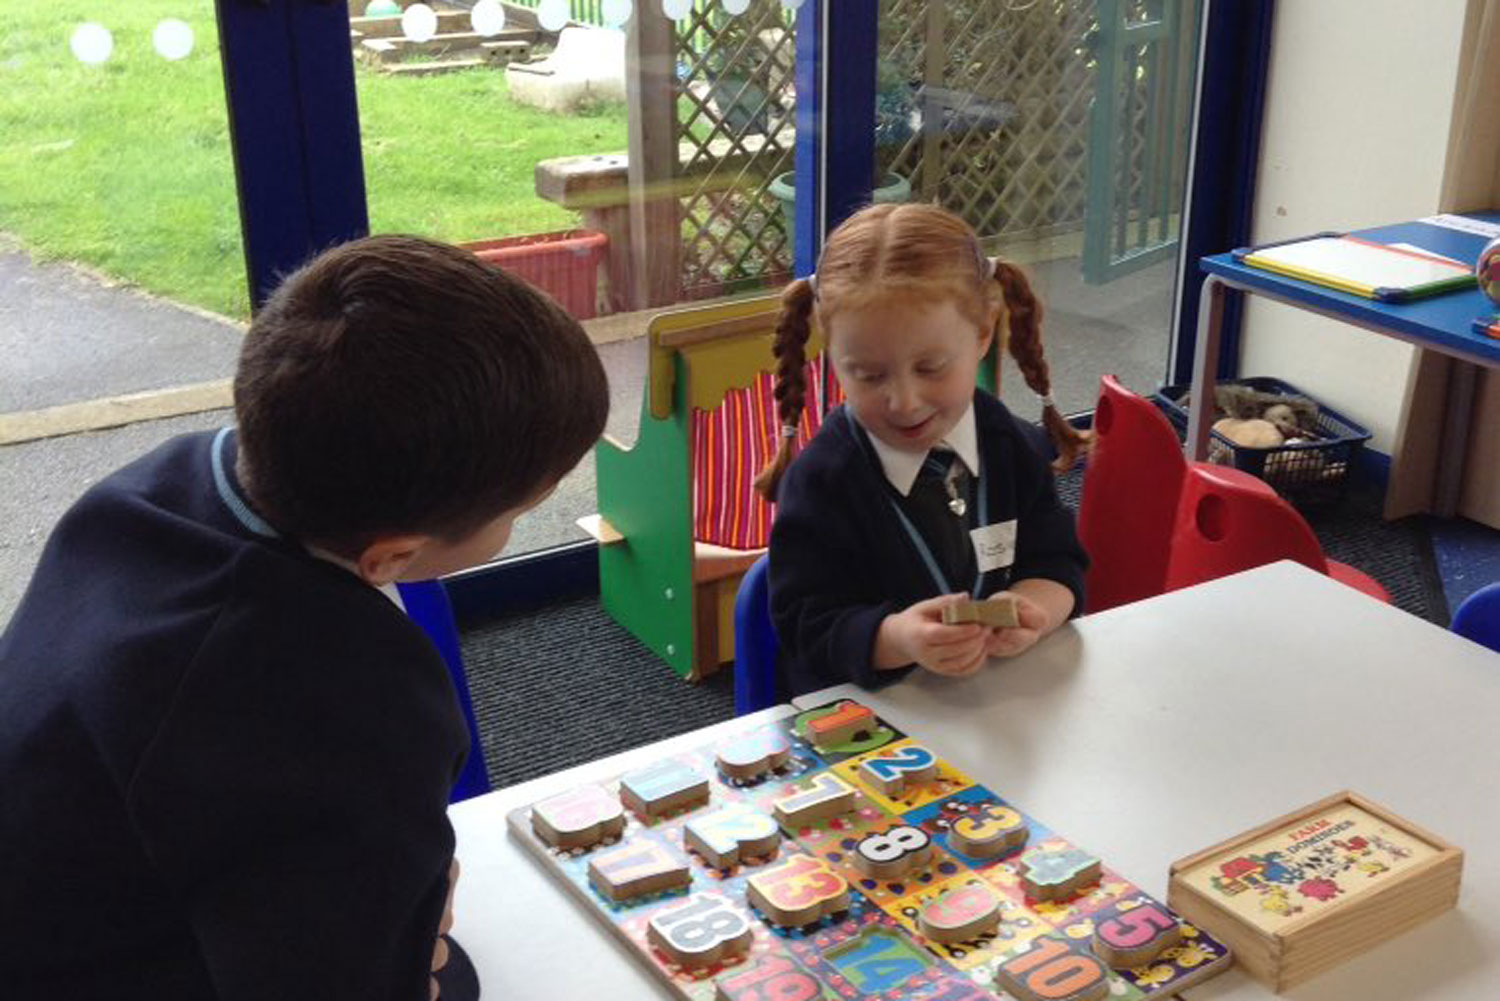 St.-Mary's-Horsforth-on-Twitter_-'St-Mary's-reception-new-children-playing-with-Year-6-buddies.-http-1.jpg